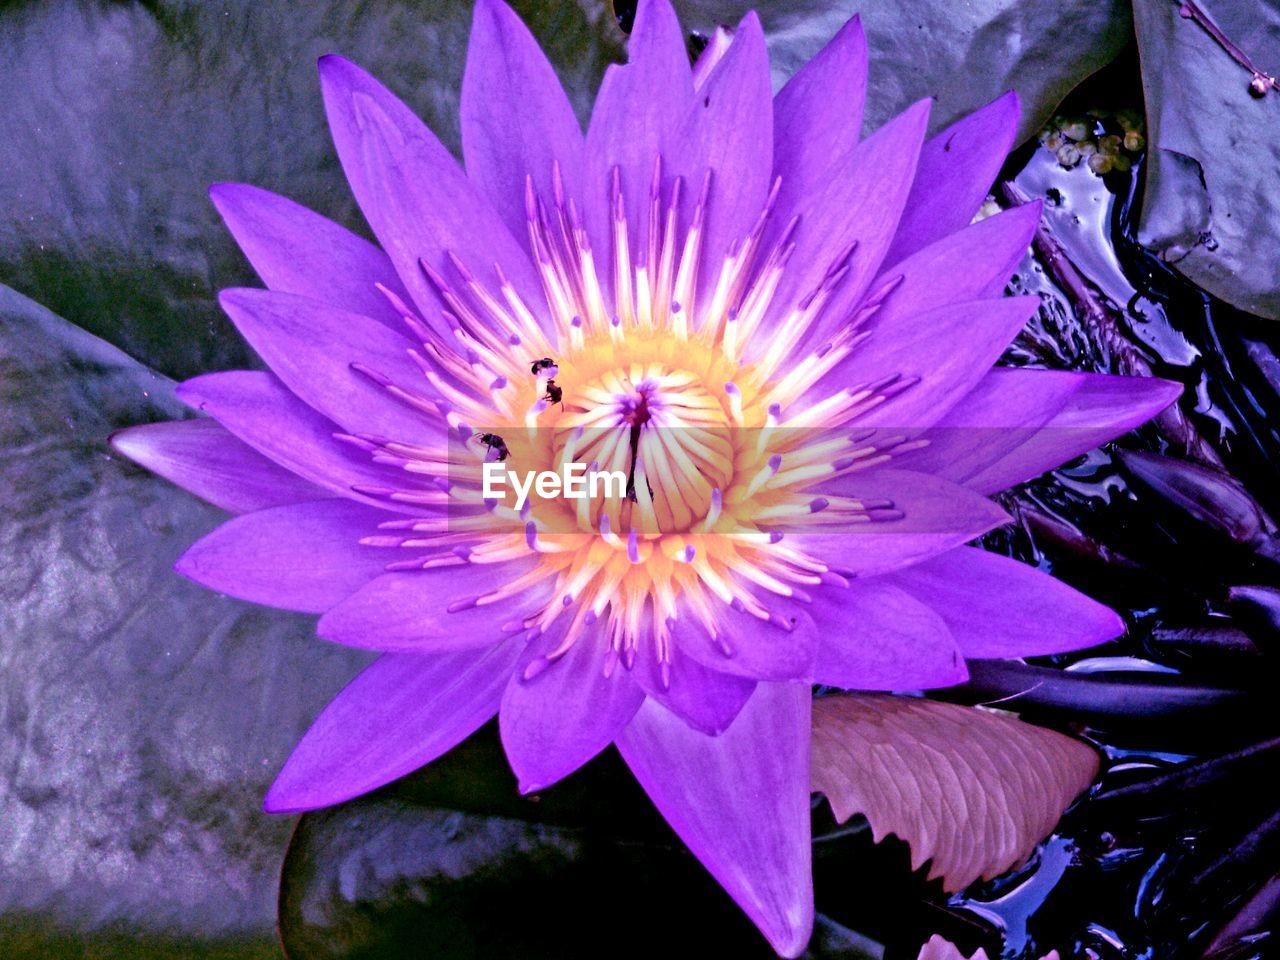 flower, flowering plant, plant, petal, freshness, vulnerability, beauty in nature, fragility, flower head, inflorescence, close-up, growth, nature, pollen, purple, no people, pink color, high angle view, springtime